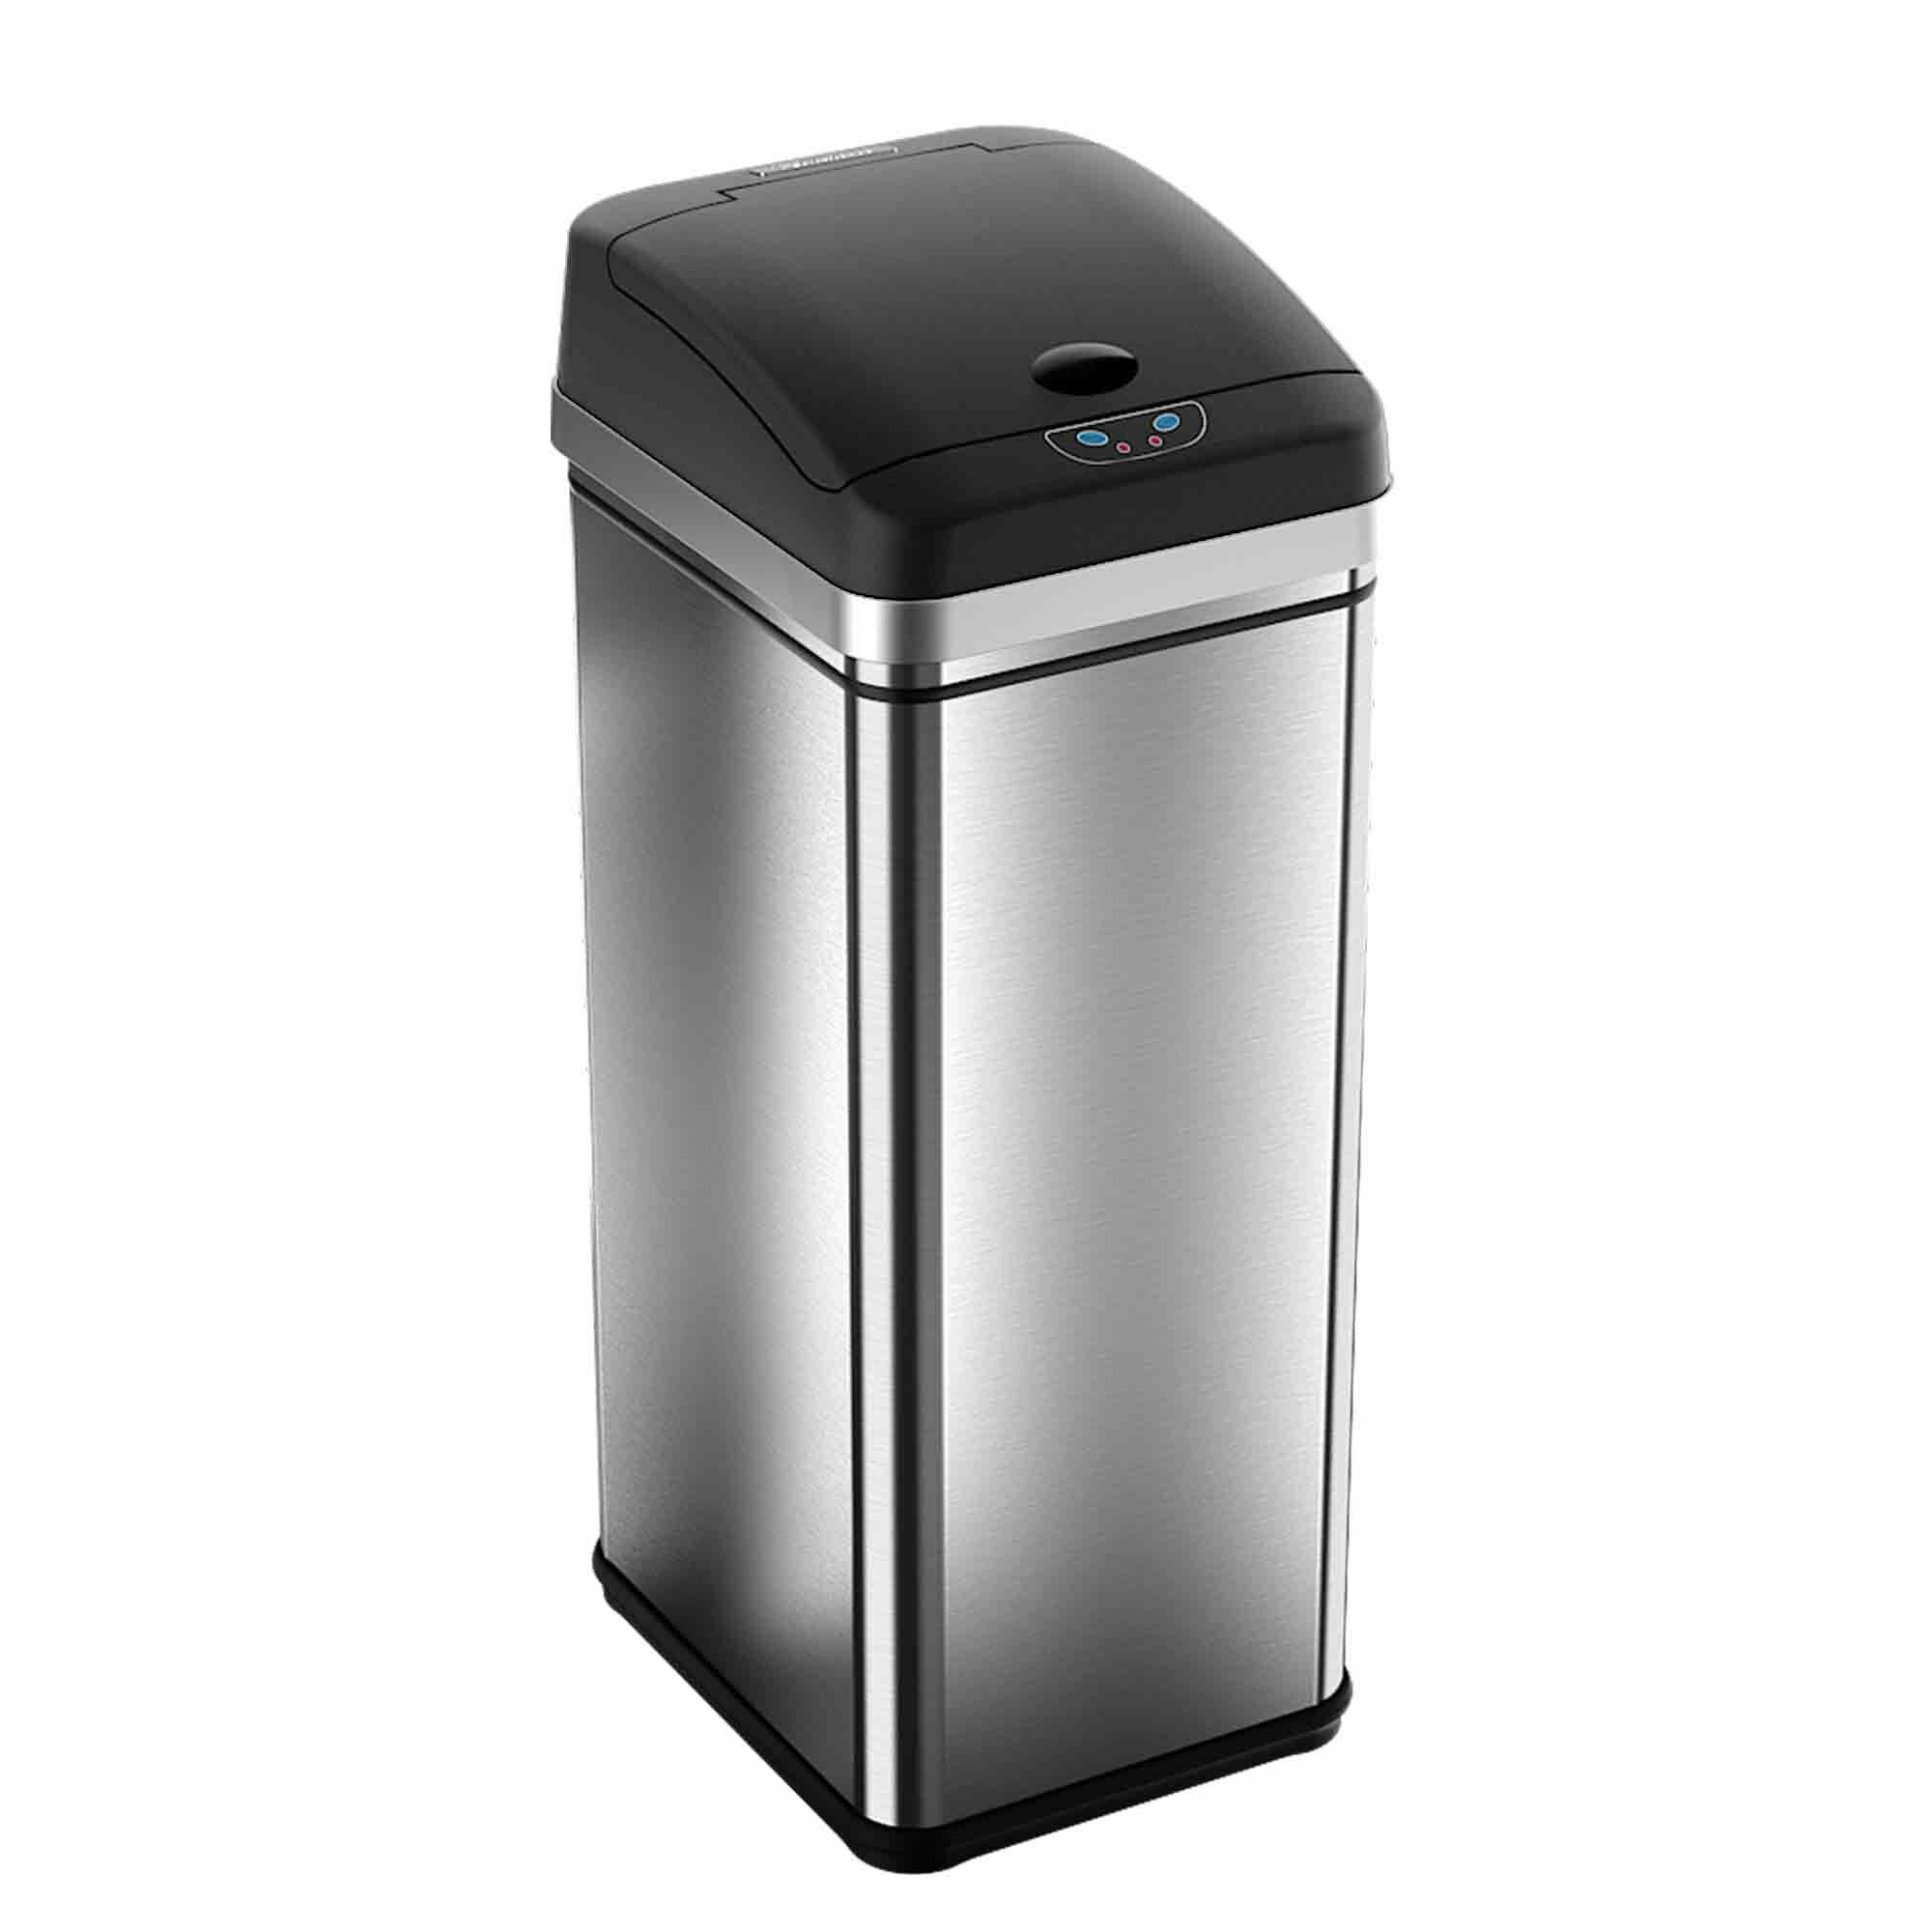 trash cans youll love wayfair - Decorative Trash Cans